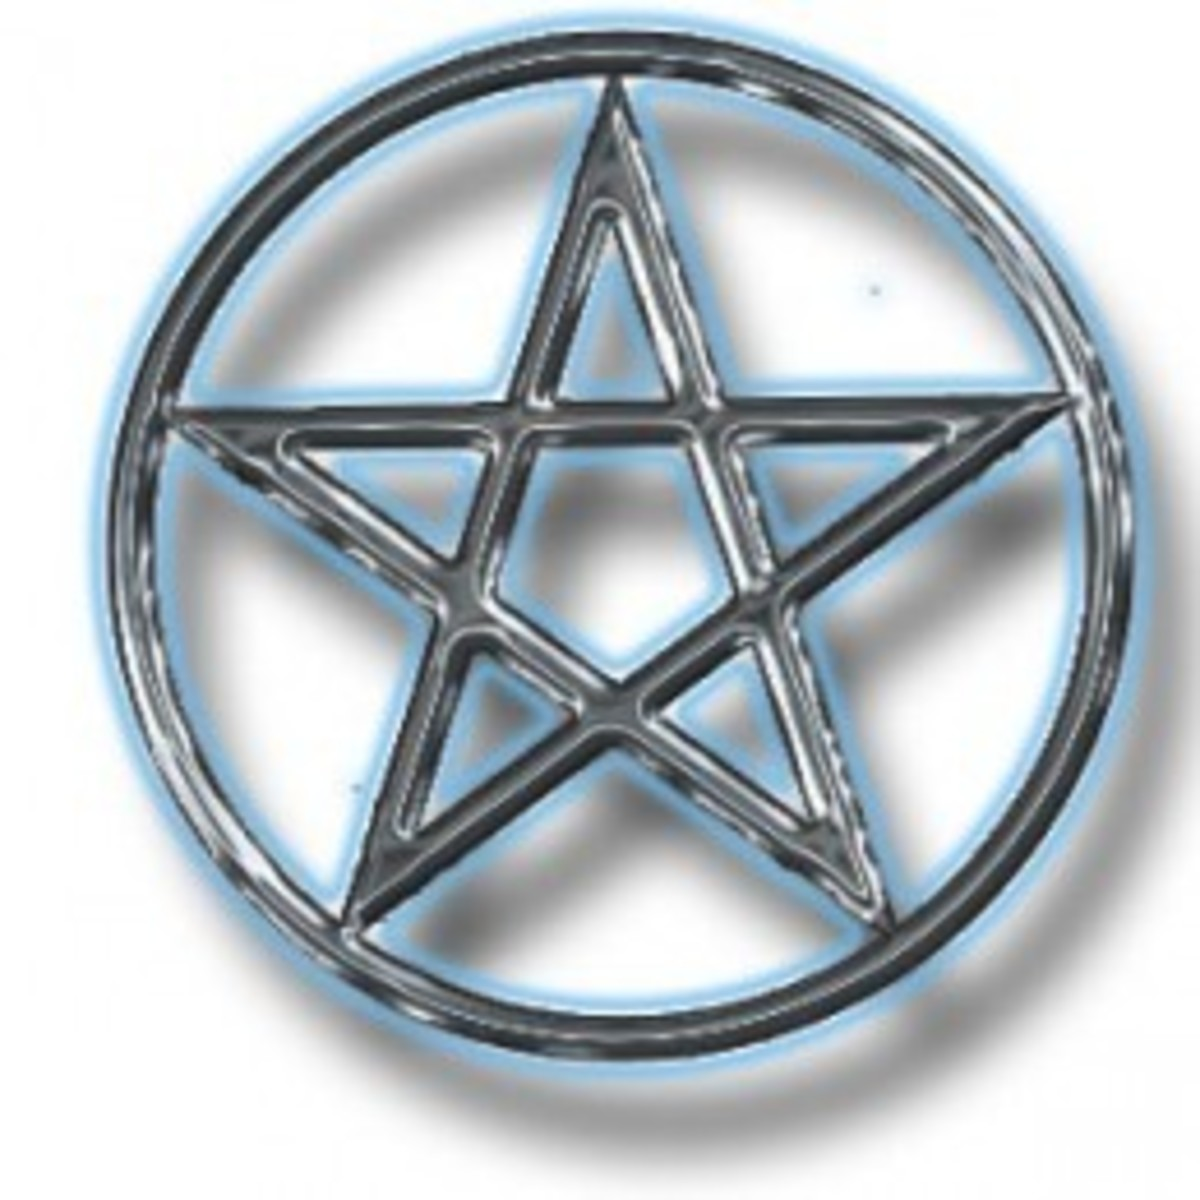 Ethics in Wicca: The Threefold Law